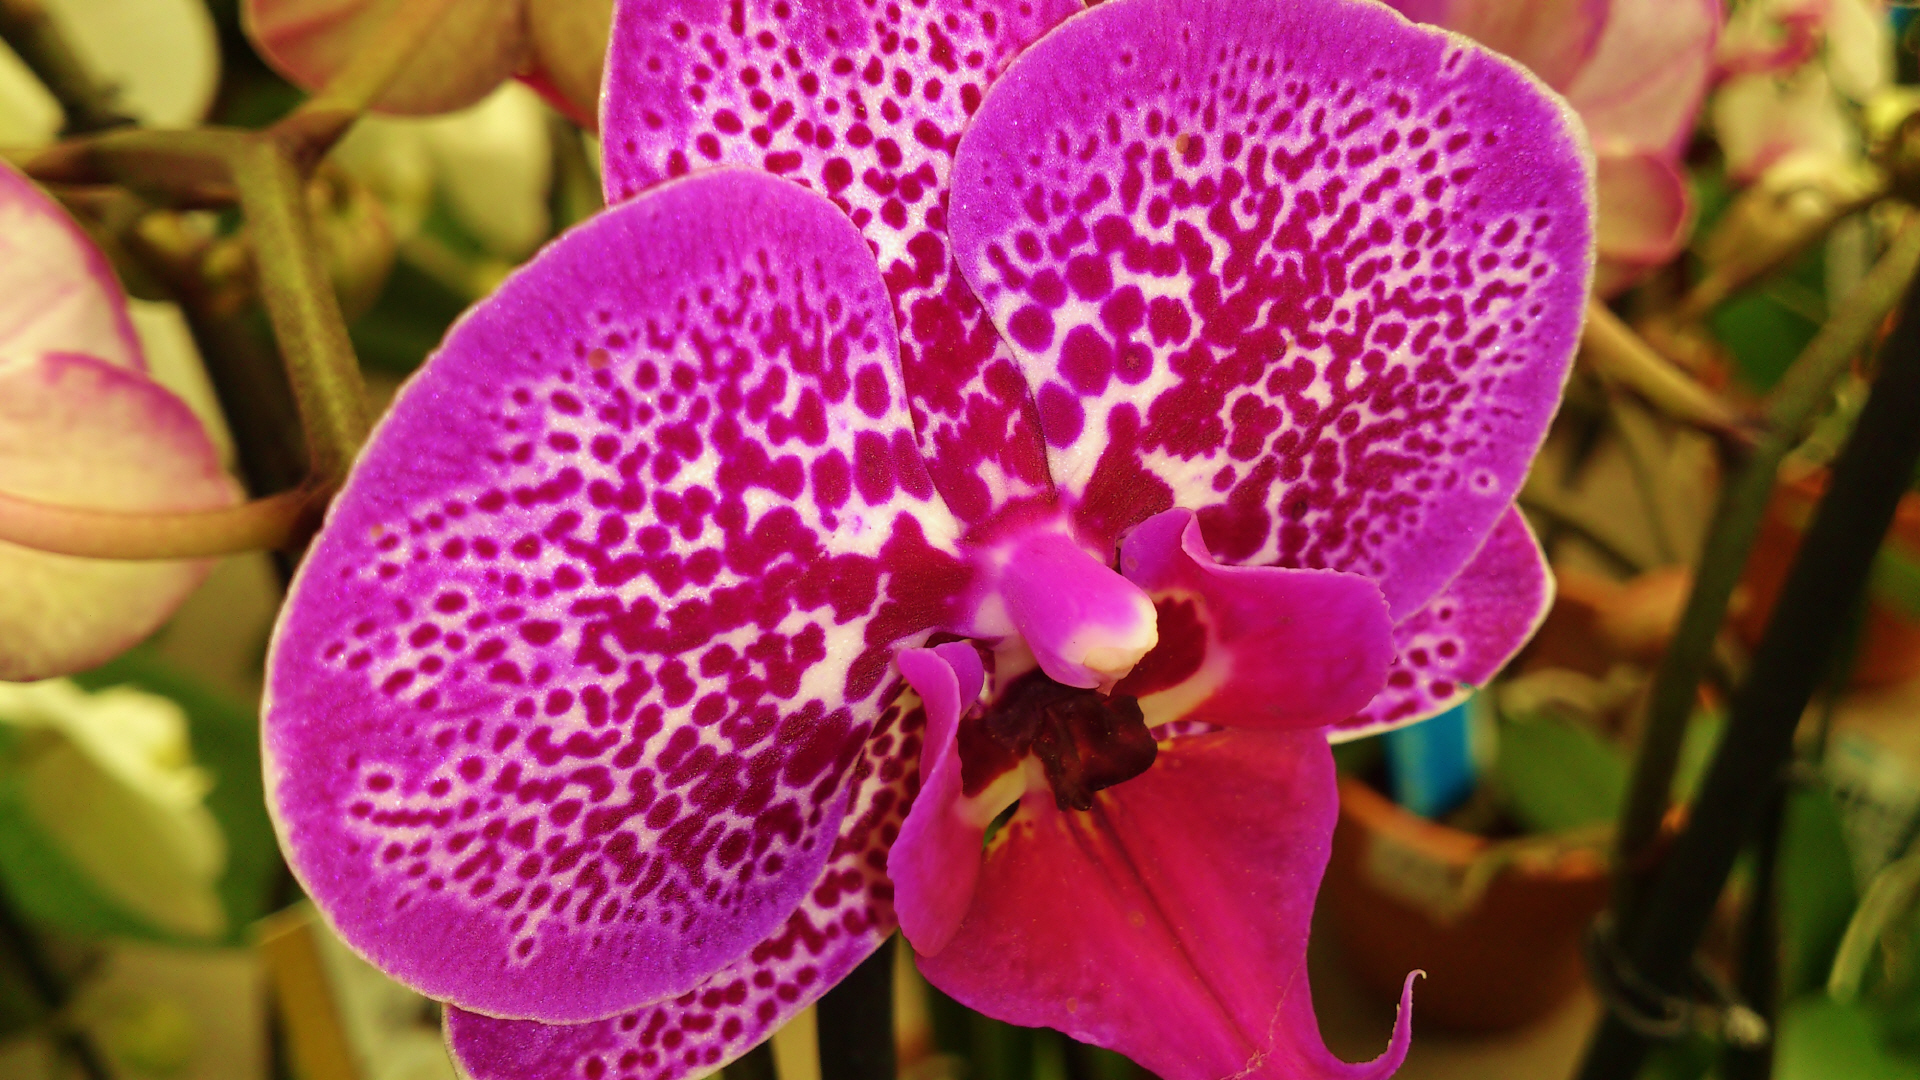 How To Repot Cymbidium Orchids together with Get Orchids To Bloom as well Orchids Phalaenopsis moreover Phalenopsis Orchid Spikes together with Watch. on orchid care after flowering